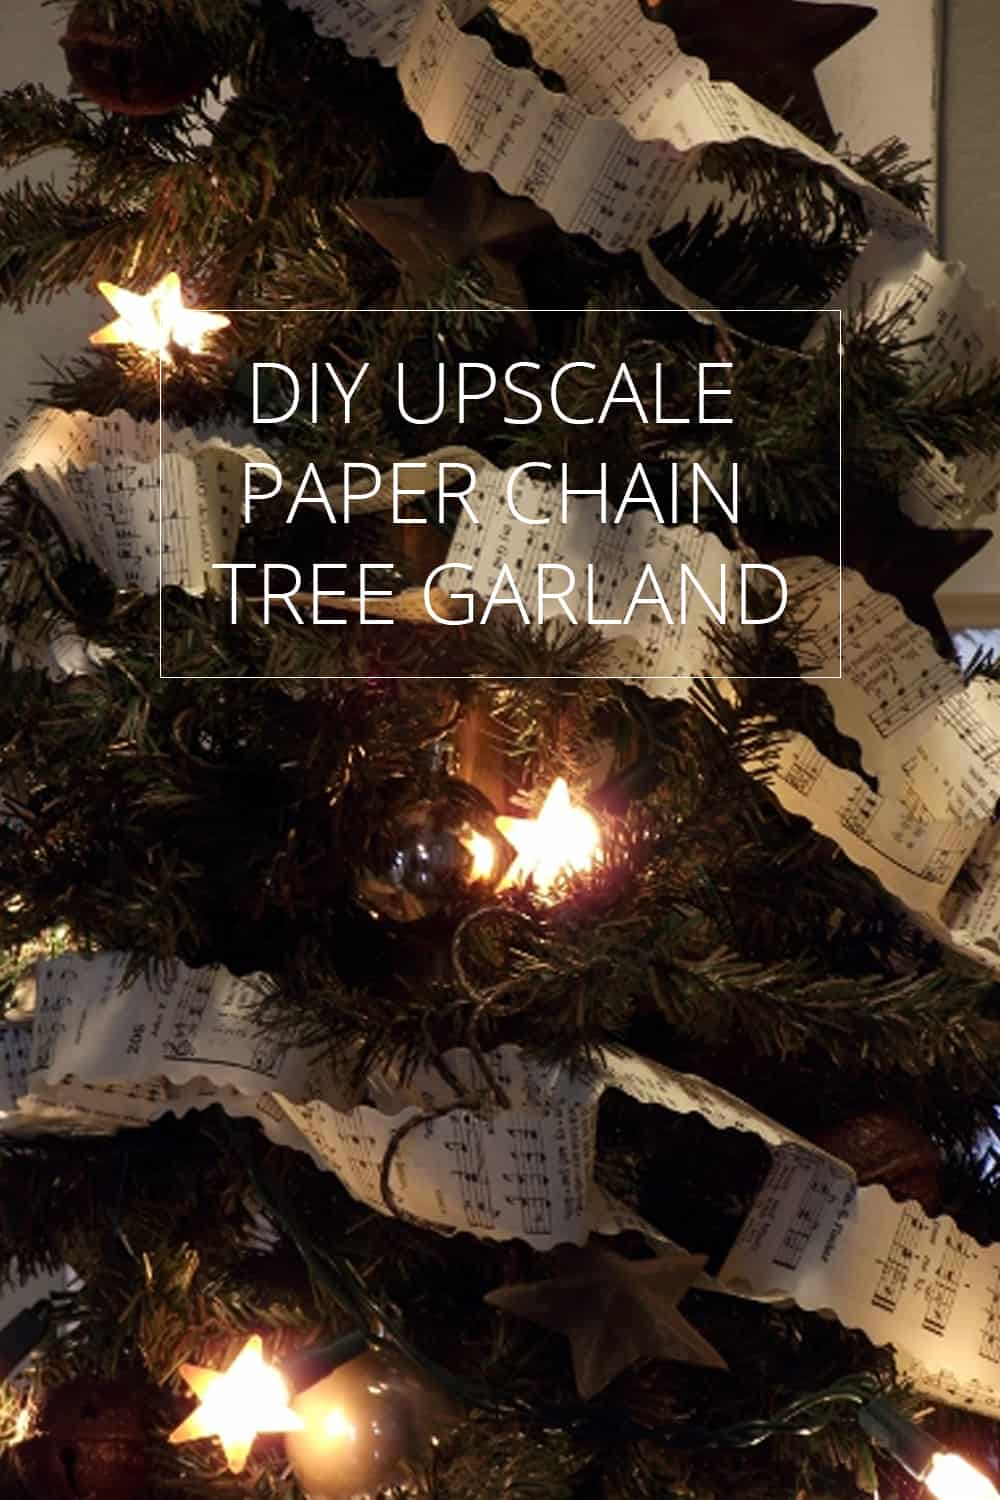 DIY Upscale Paper Chain Tree Garland